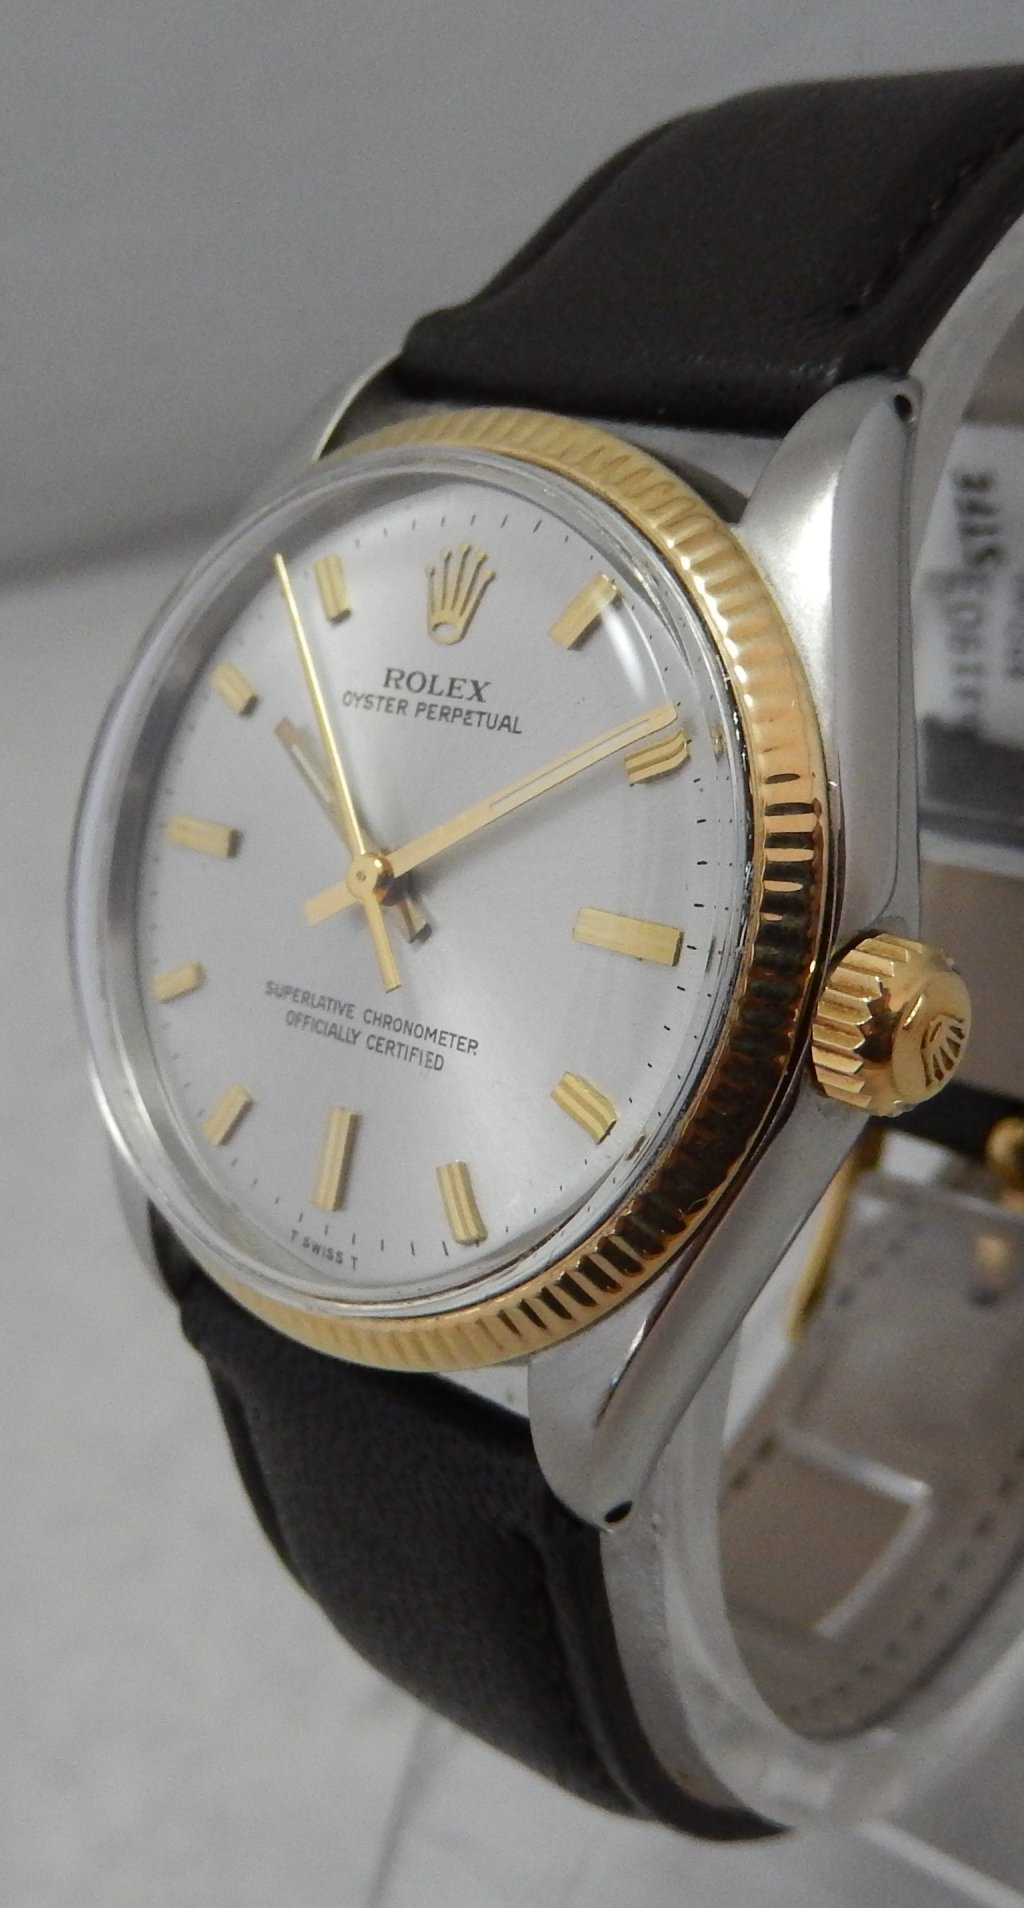 Details about Rolex Oyster Perpetual 18k/ss Gold \u0026 Stainless Steel Mens  Watch Model 1005 1967